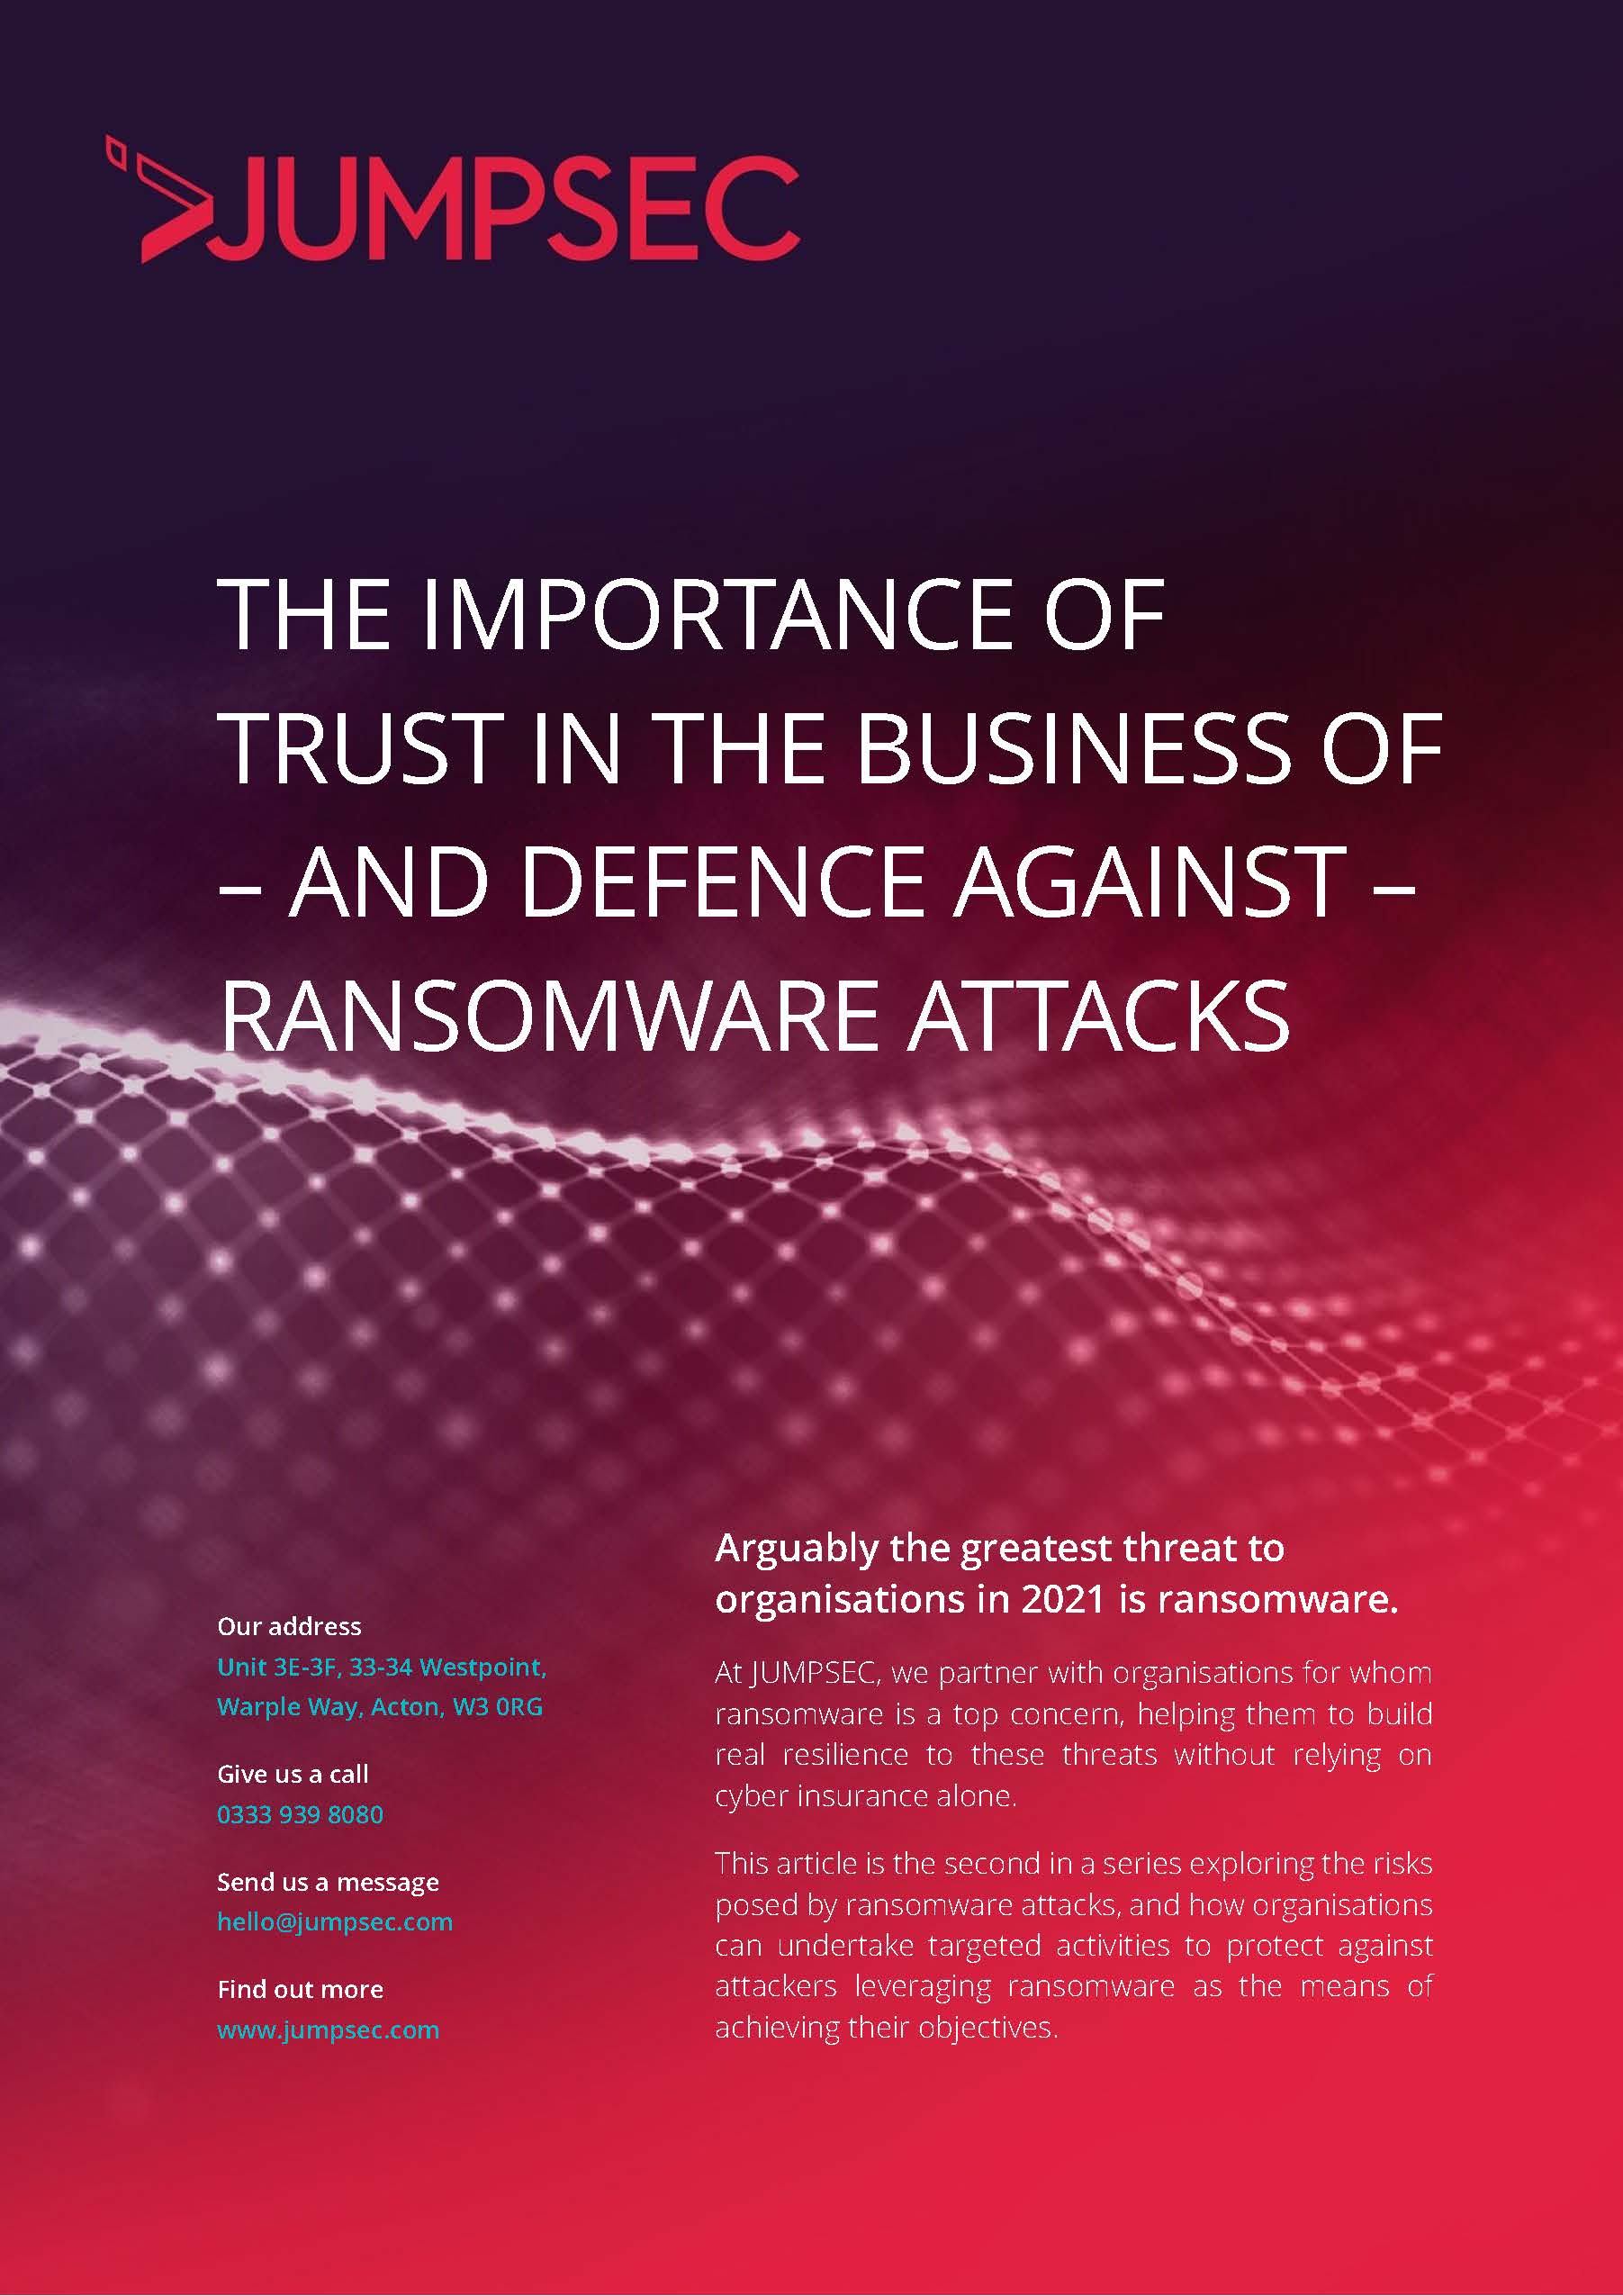 THE IMPORTANCE OF TRUST IN THE BUSINESS OF - AND DEFENCE AGAINST - RANSOMWARE ATTACKS